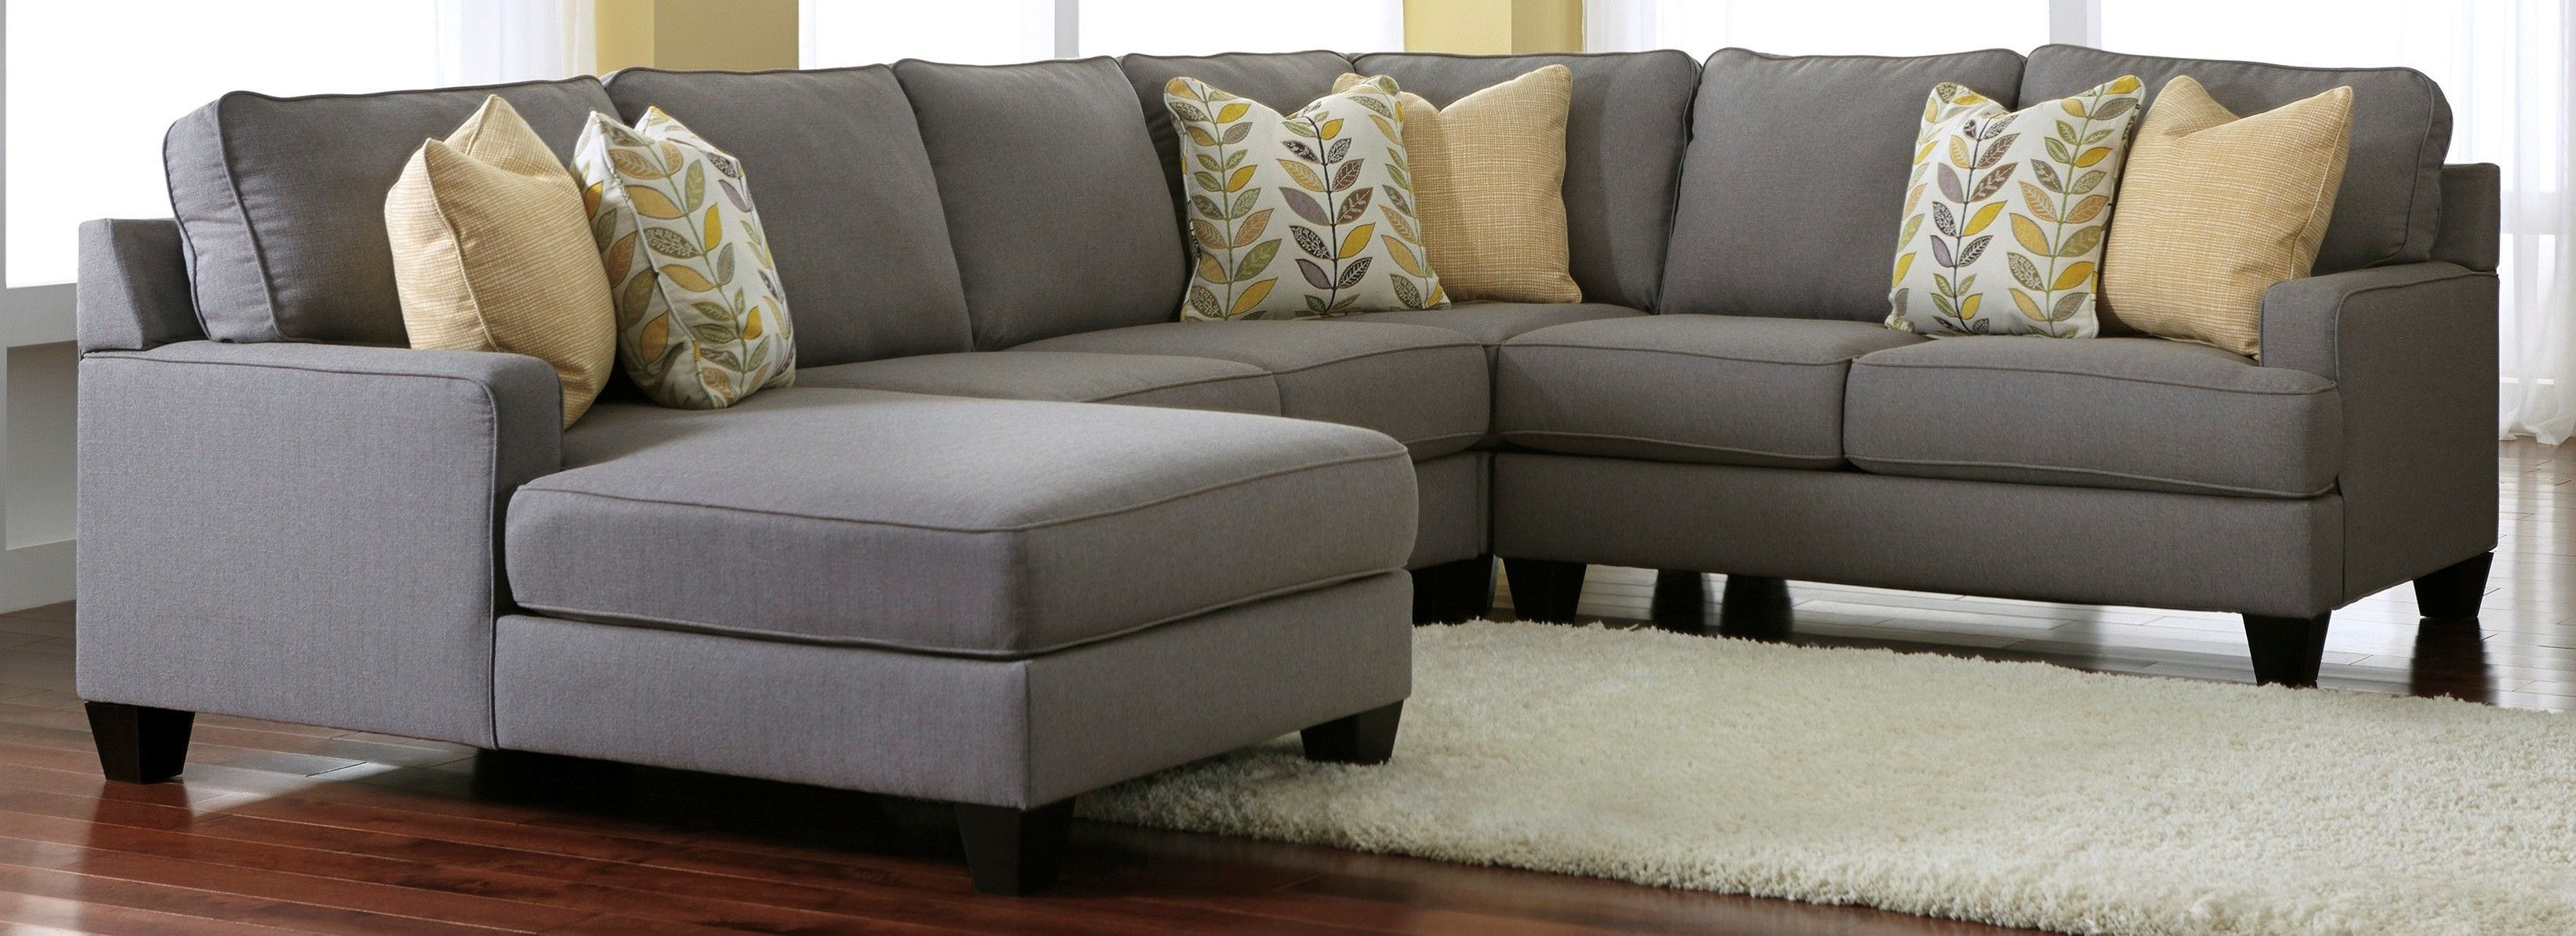 Inspirational Sectional Sofas Ashley Furniture Decoration